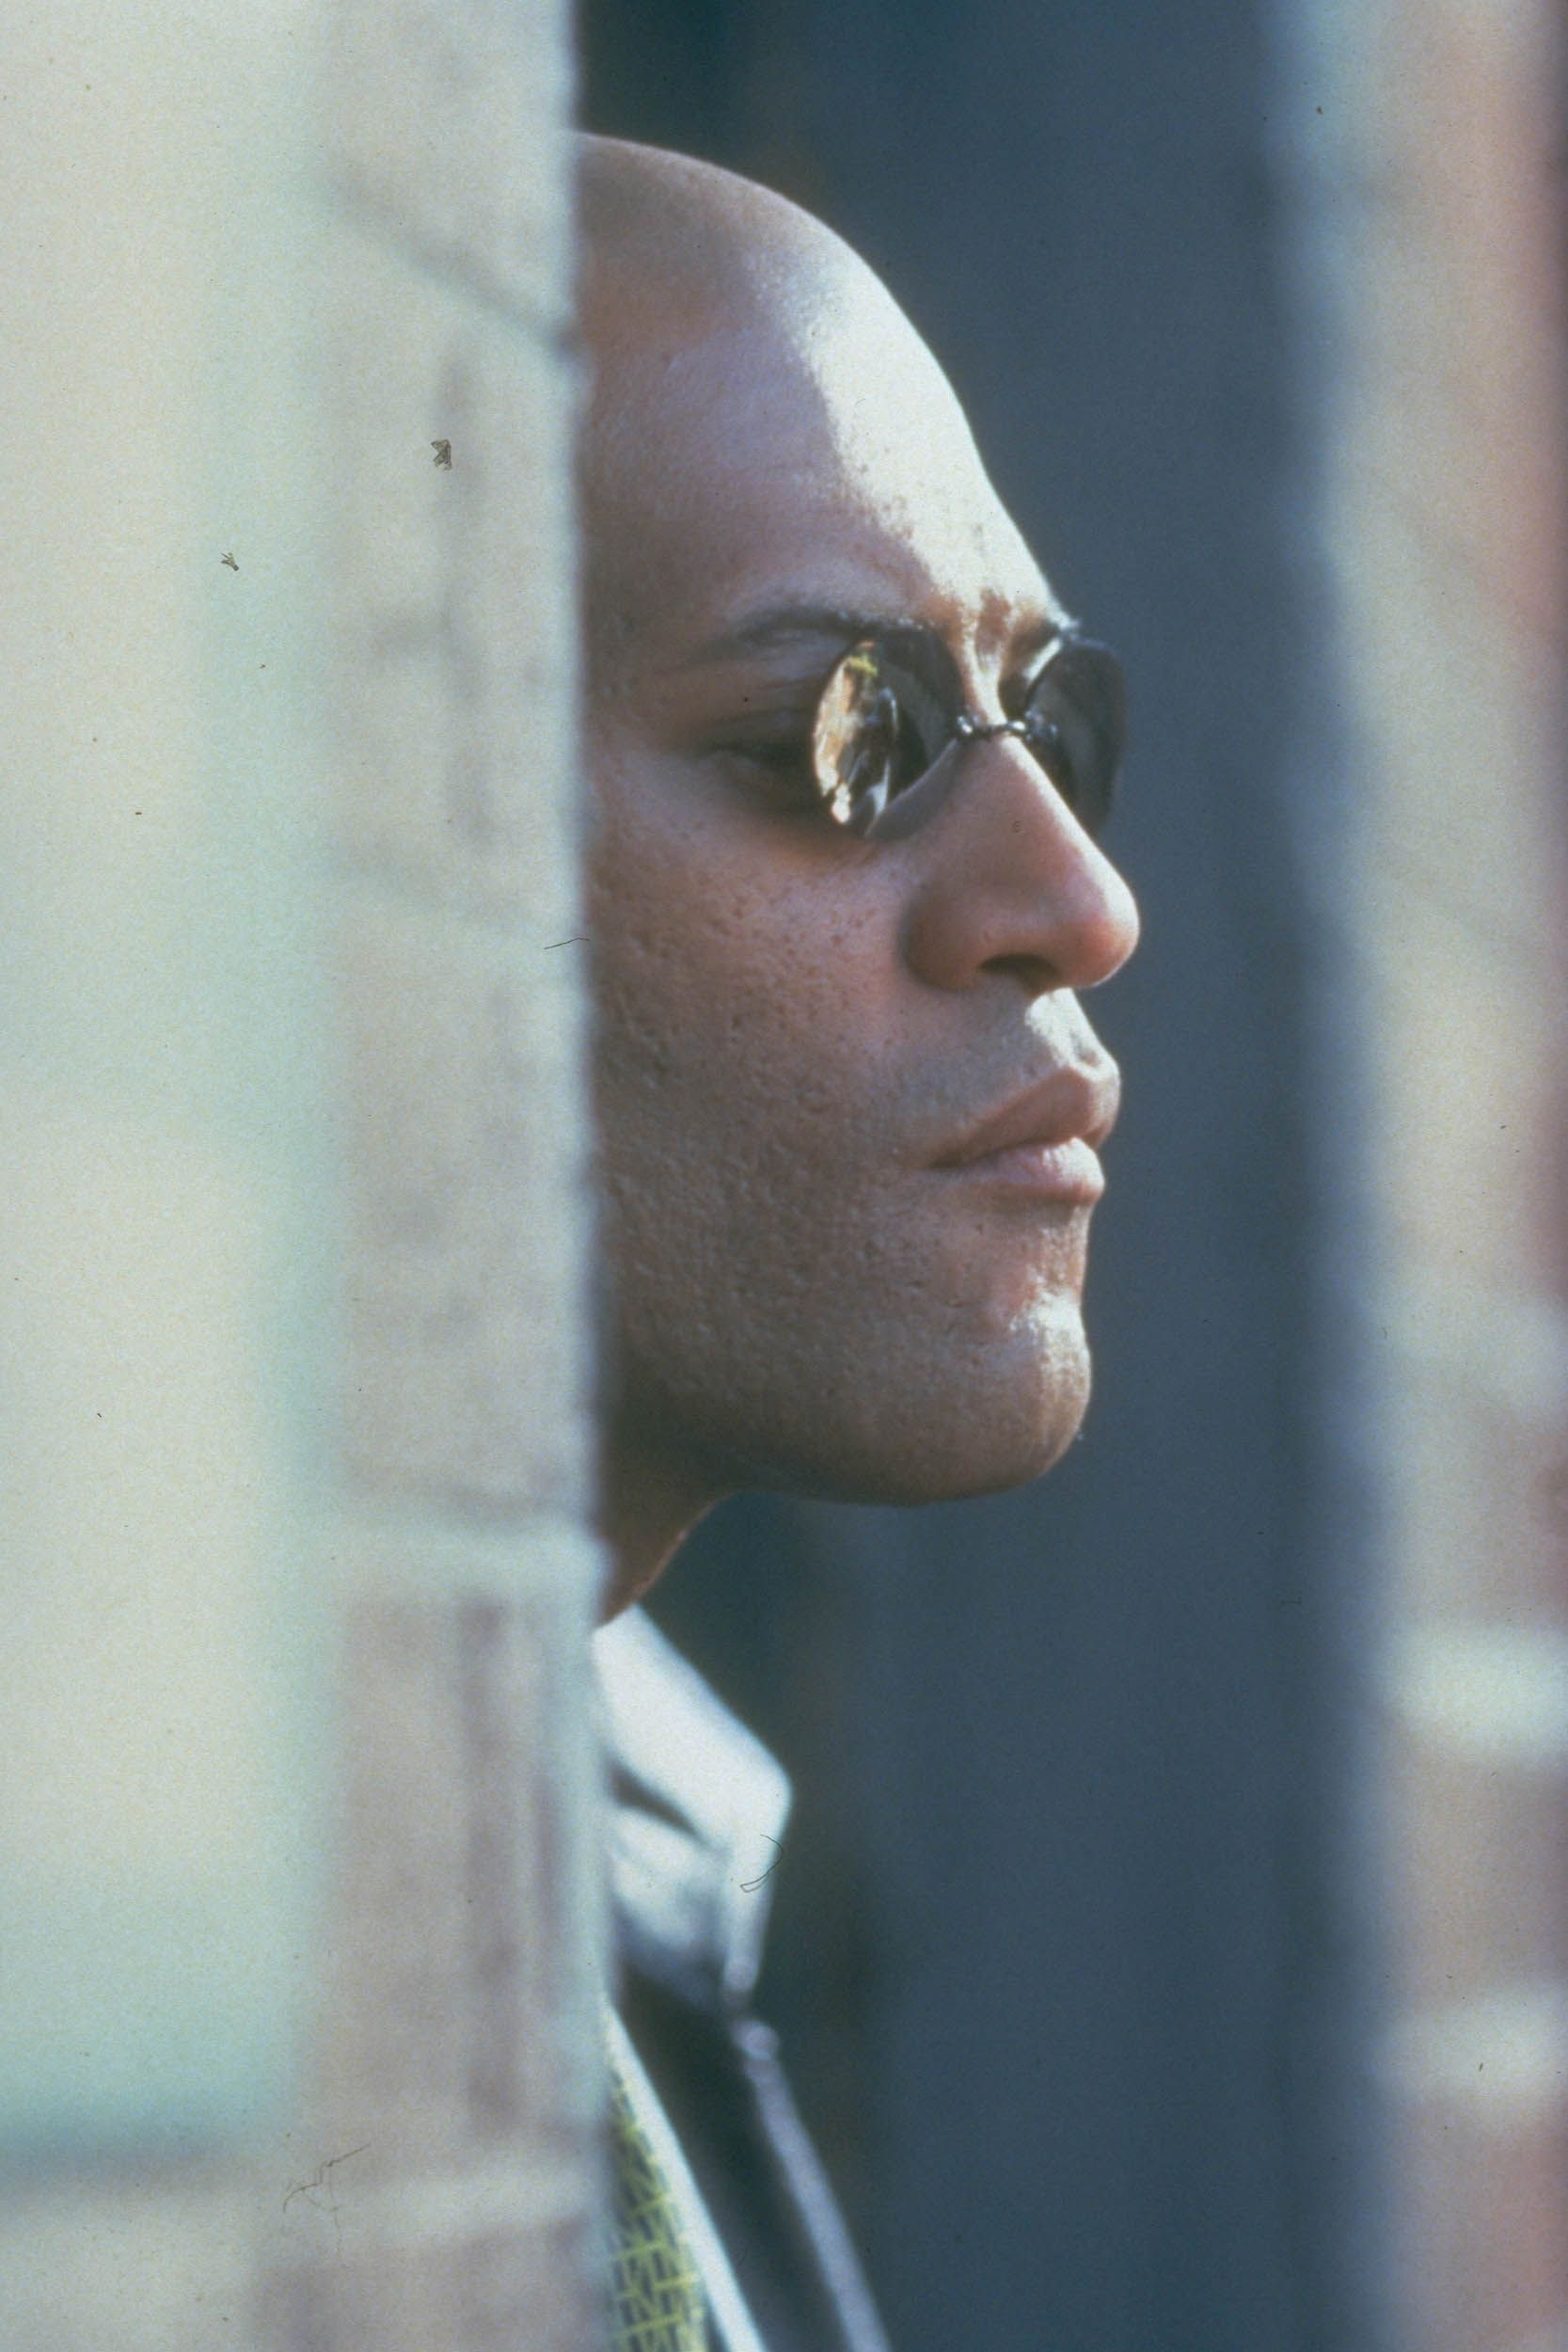 Laurence Fishburne in the 1999 film The Matrix.